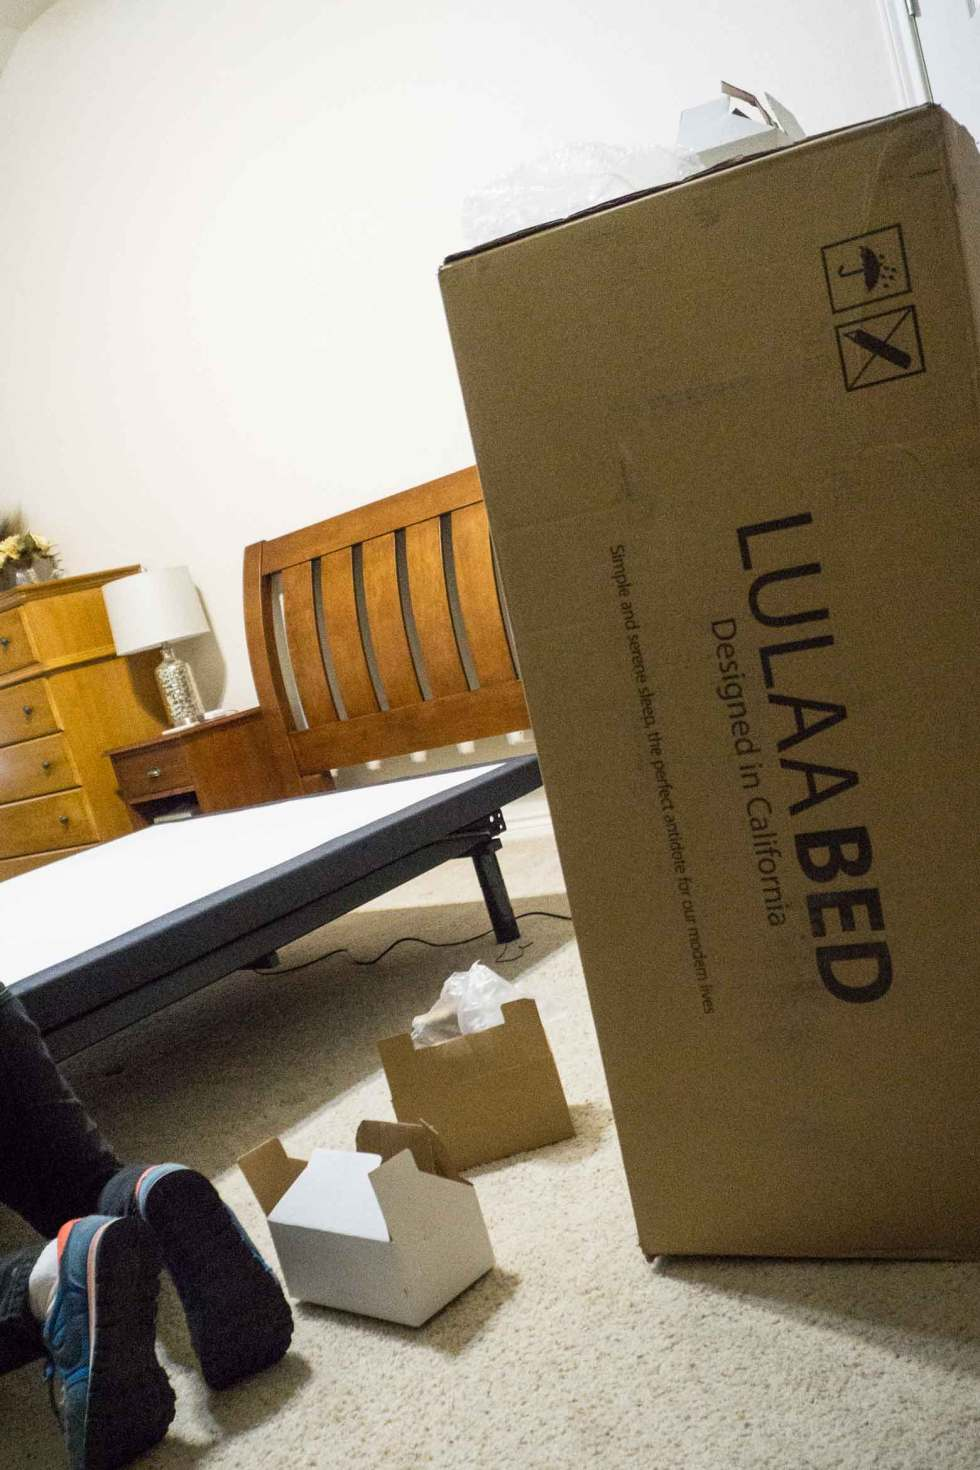 LulaaBED in a box